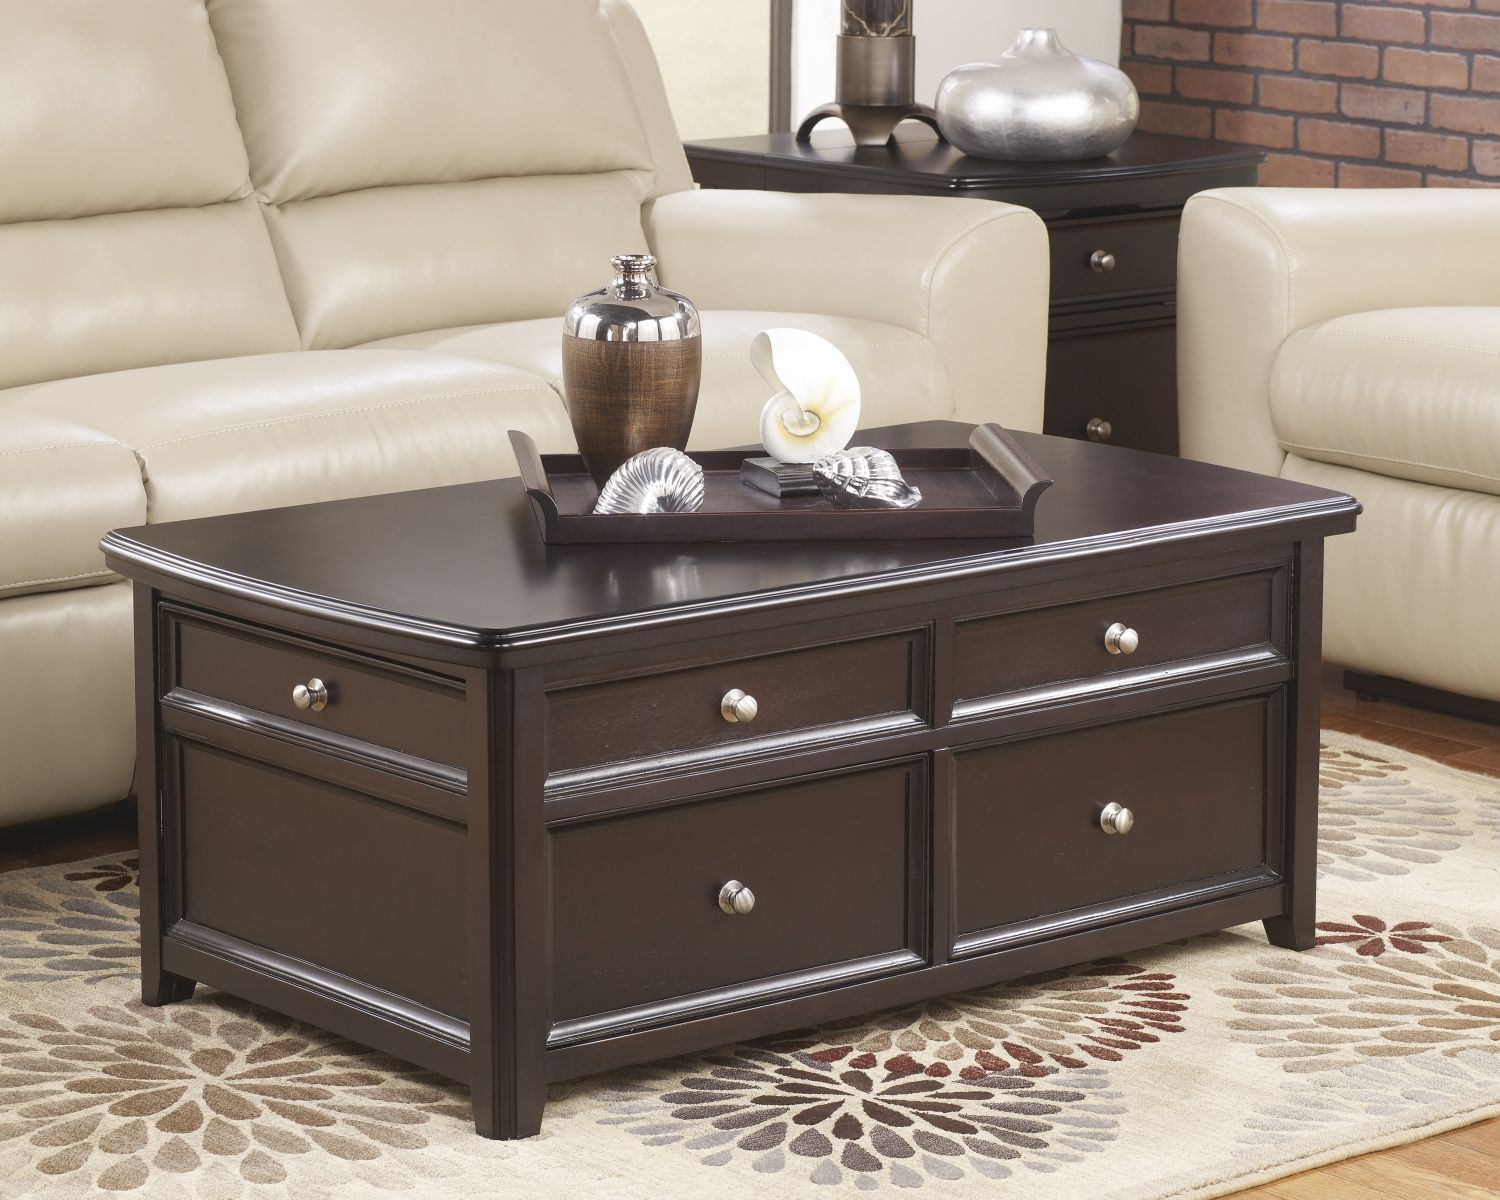 Picture of Carlyle Lift Top Coffee Table * D